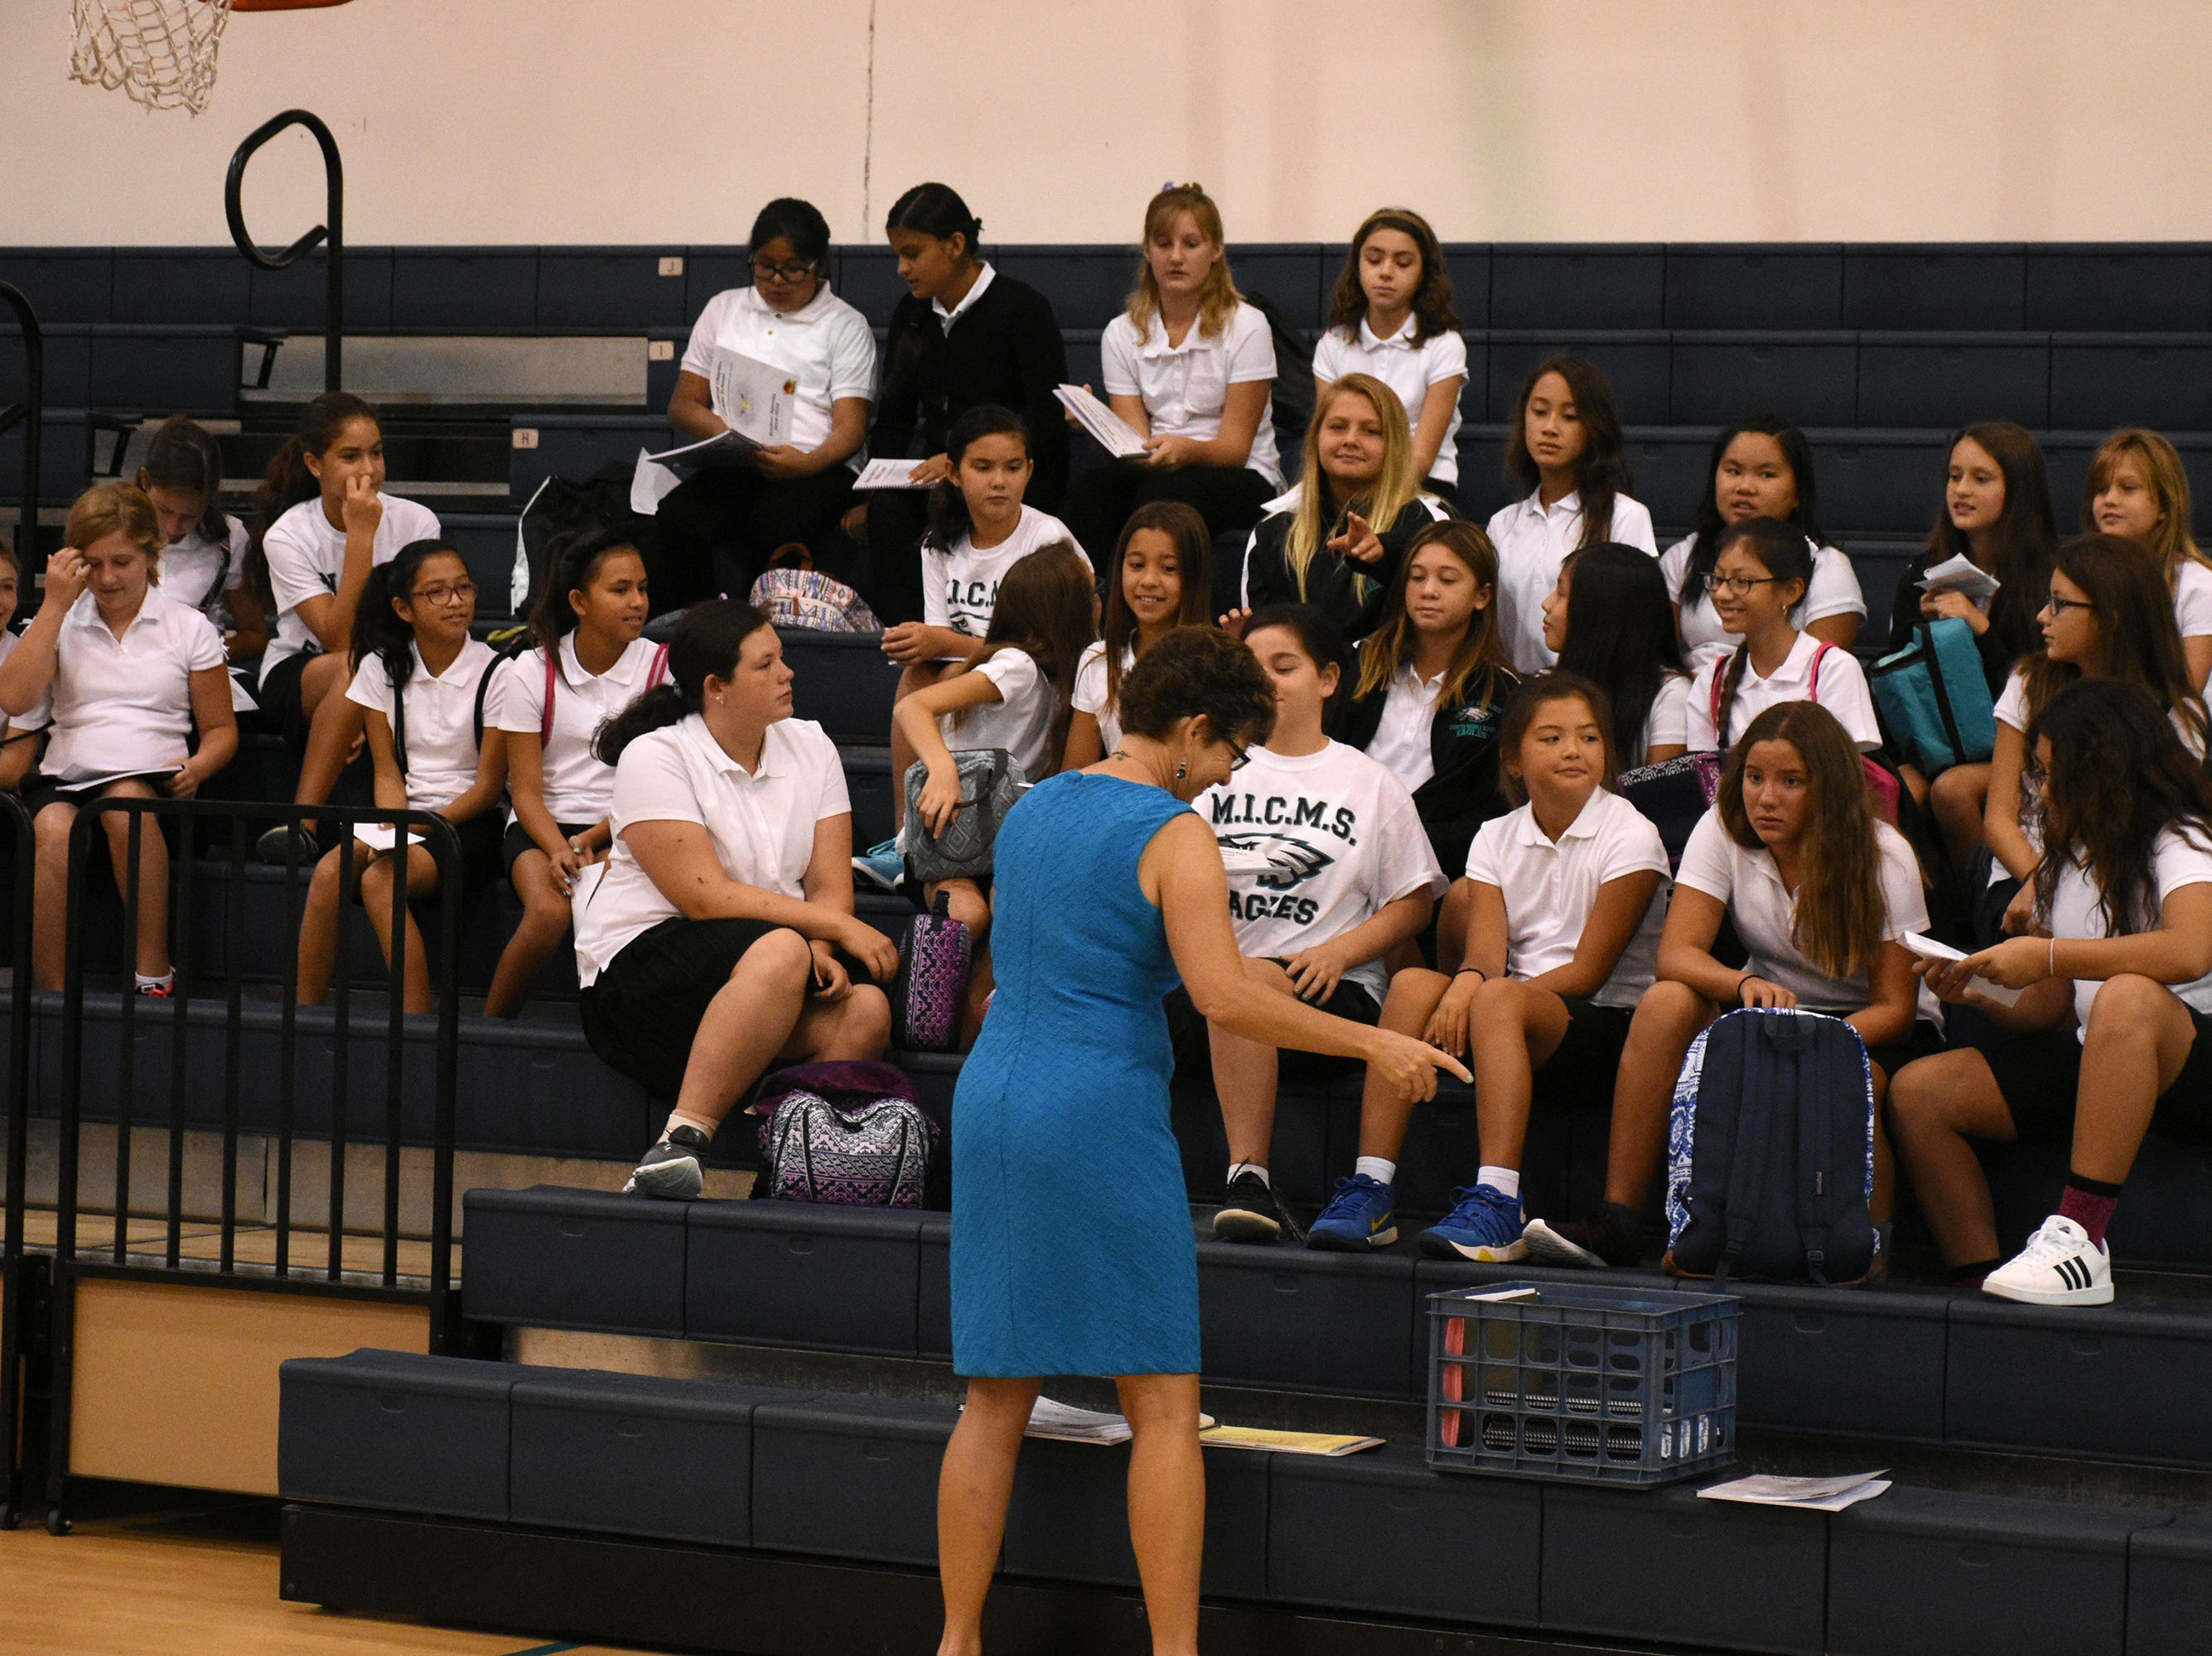 Phys. Ed. teacher helps orient students in the gym at Marco Island Charter Middle School. Marco Island students, along with all of Collier County, returned to school for the first day of classes in the new school year on Wednesday.